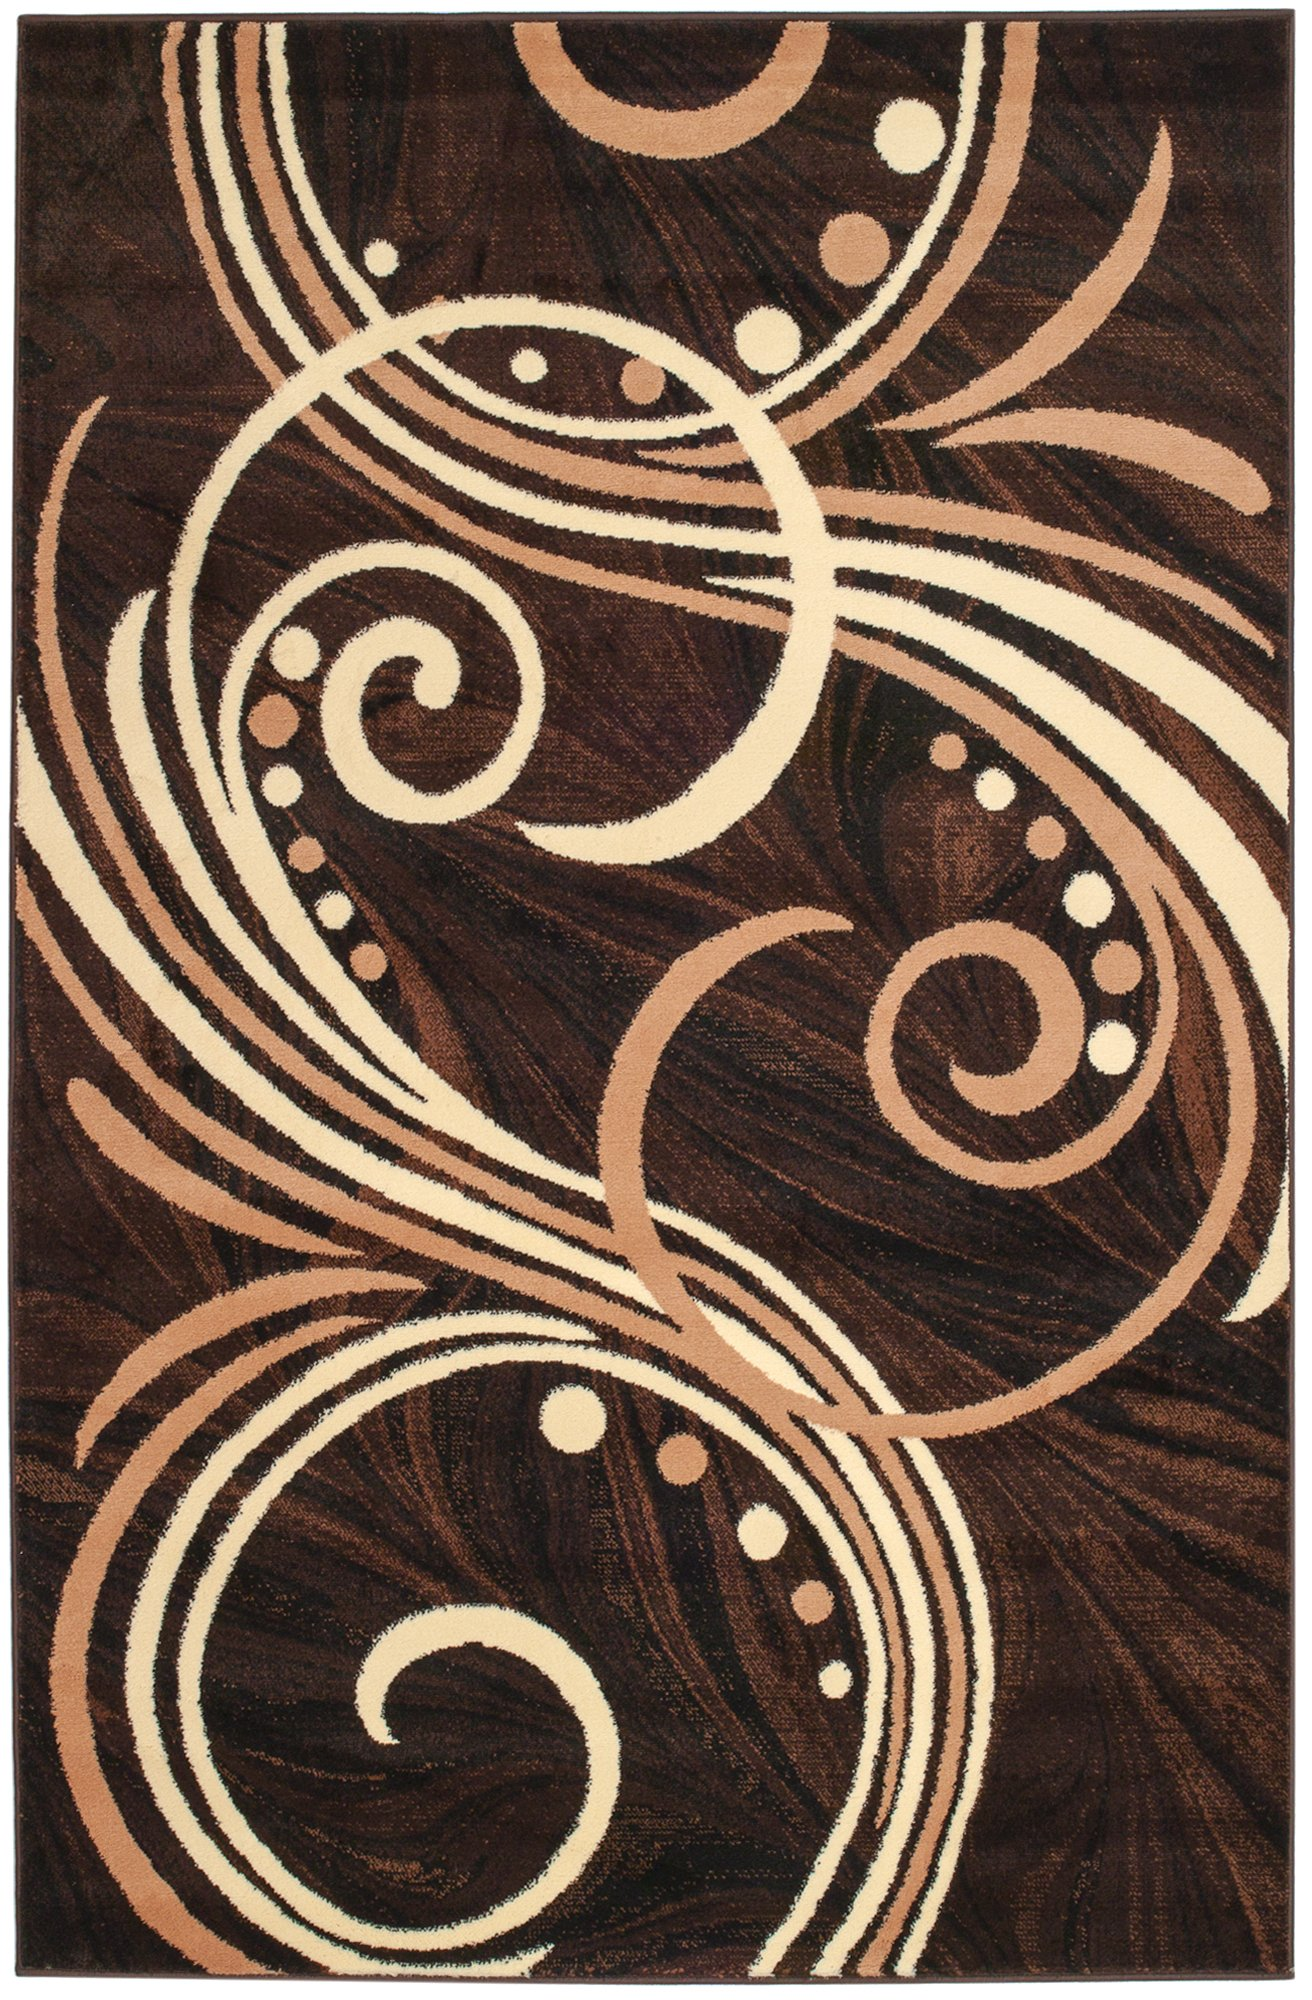 Summit 4D-PSJF-CZR4 24 New Area Choco Beige Brown Modern Abstract Rug Many Aprx (2x3 Actual is 22''x36'') ',